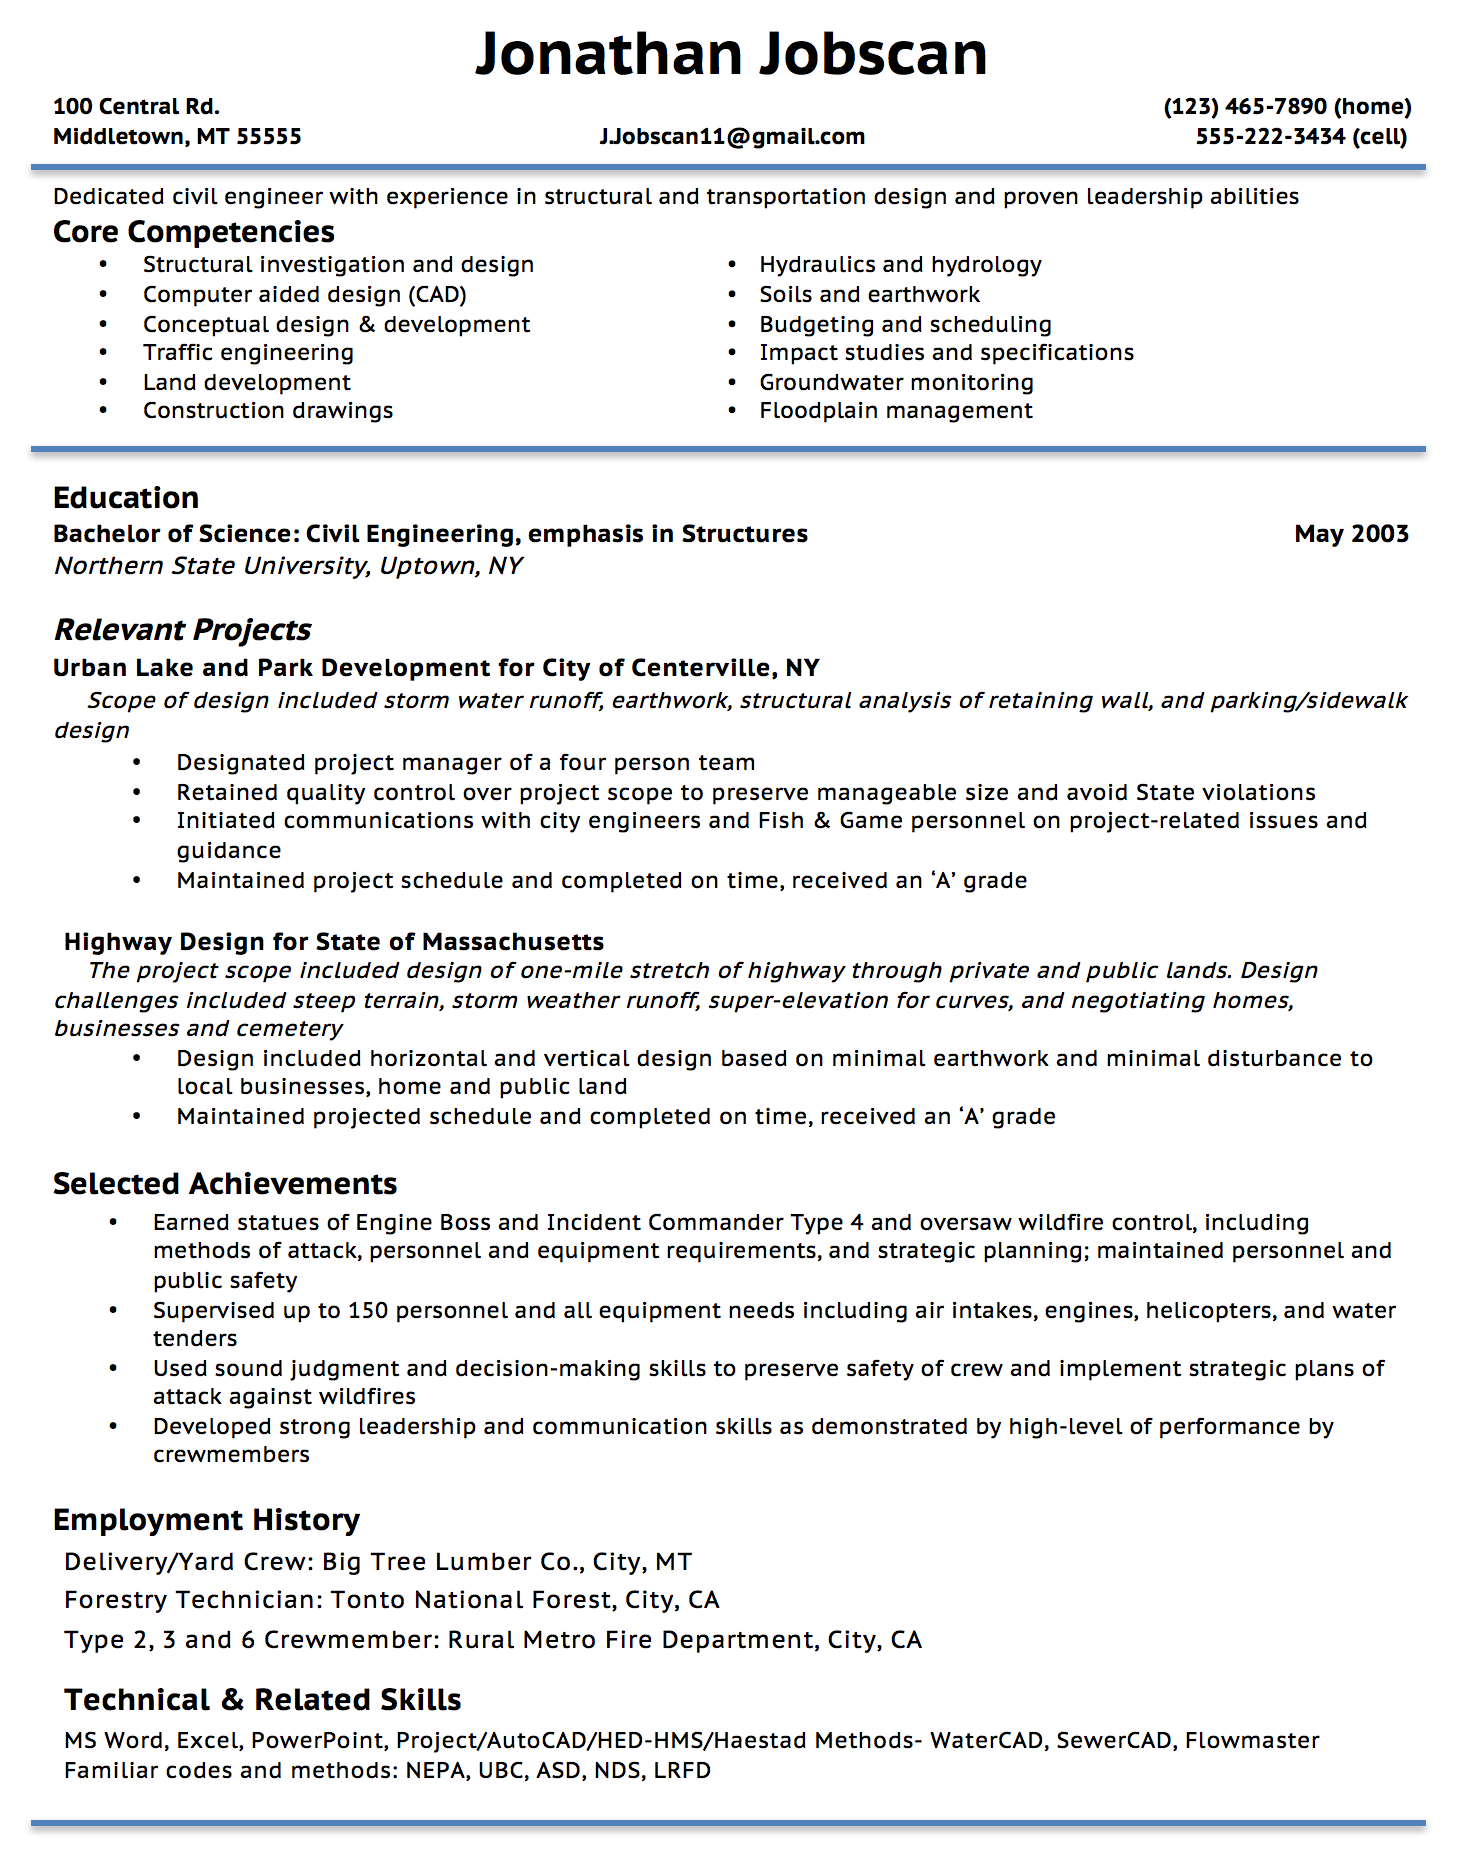 Opposenewapstandardsus  Personable Resume Writing Guide  Jobscan With Foxy Example Of A Functional Resume Format With Delightful Template For Resume Also High School Student Resume In Addition Basic Resume Examples And It Resume As Well As Creating A Resume Additionally Indeed Resumes From Jobscanco With Opposenewapstandardsus  Foxy Resume Writing Guide  Jobscan With Delightful Example Of A Functional Resume Format And Personable Template For Resume Also High School Student Resume In Addition Basic Resume Examples From Jobscanco